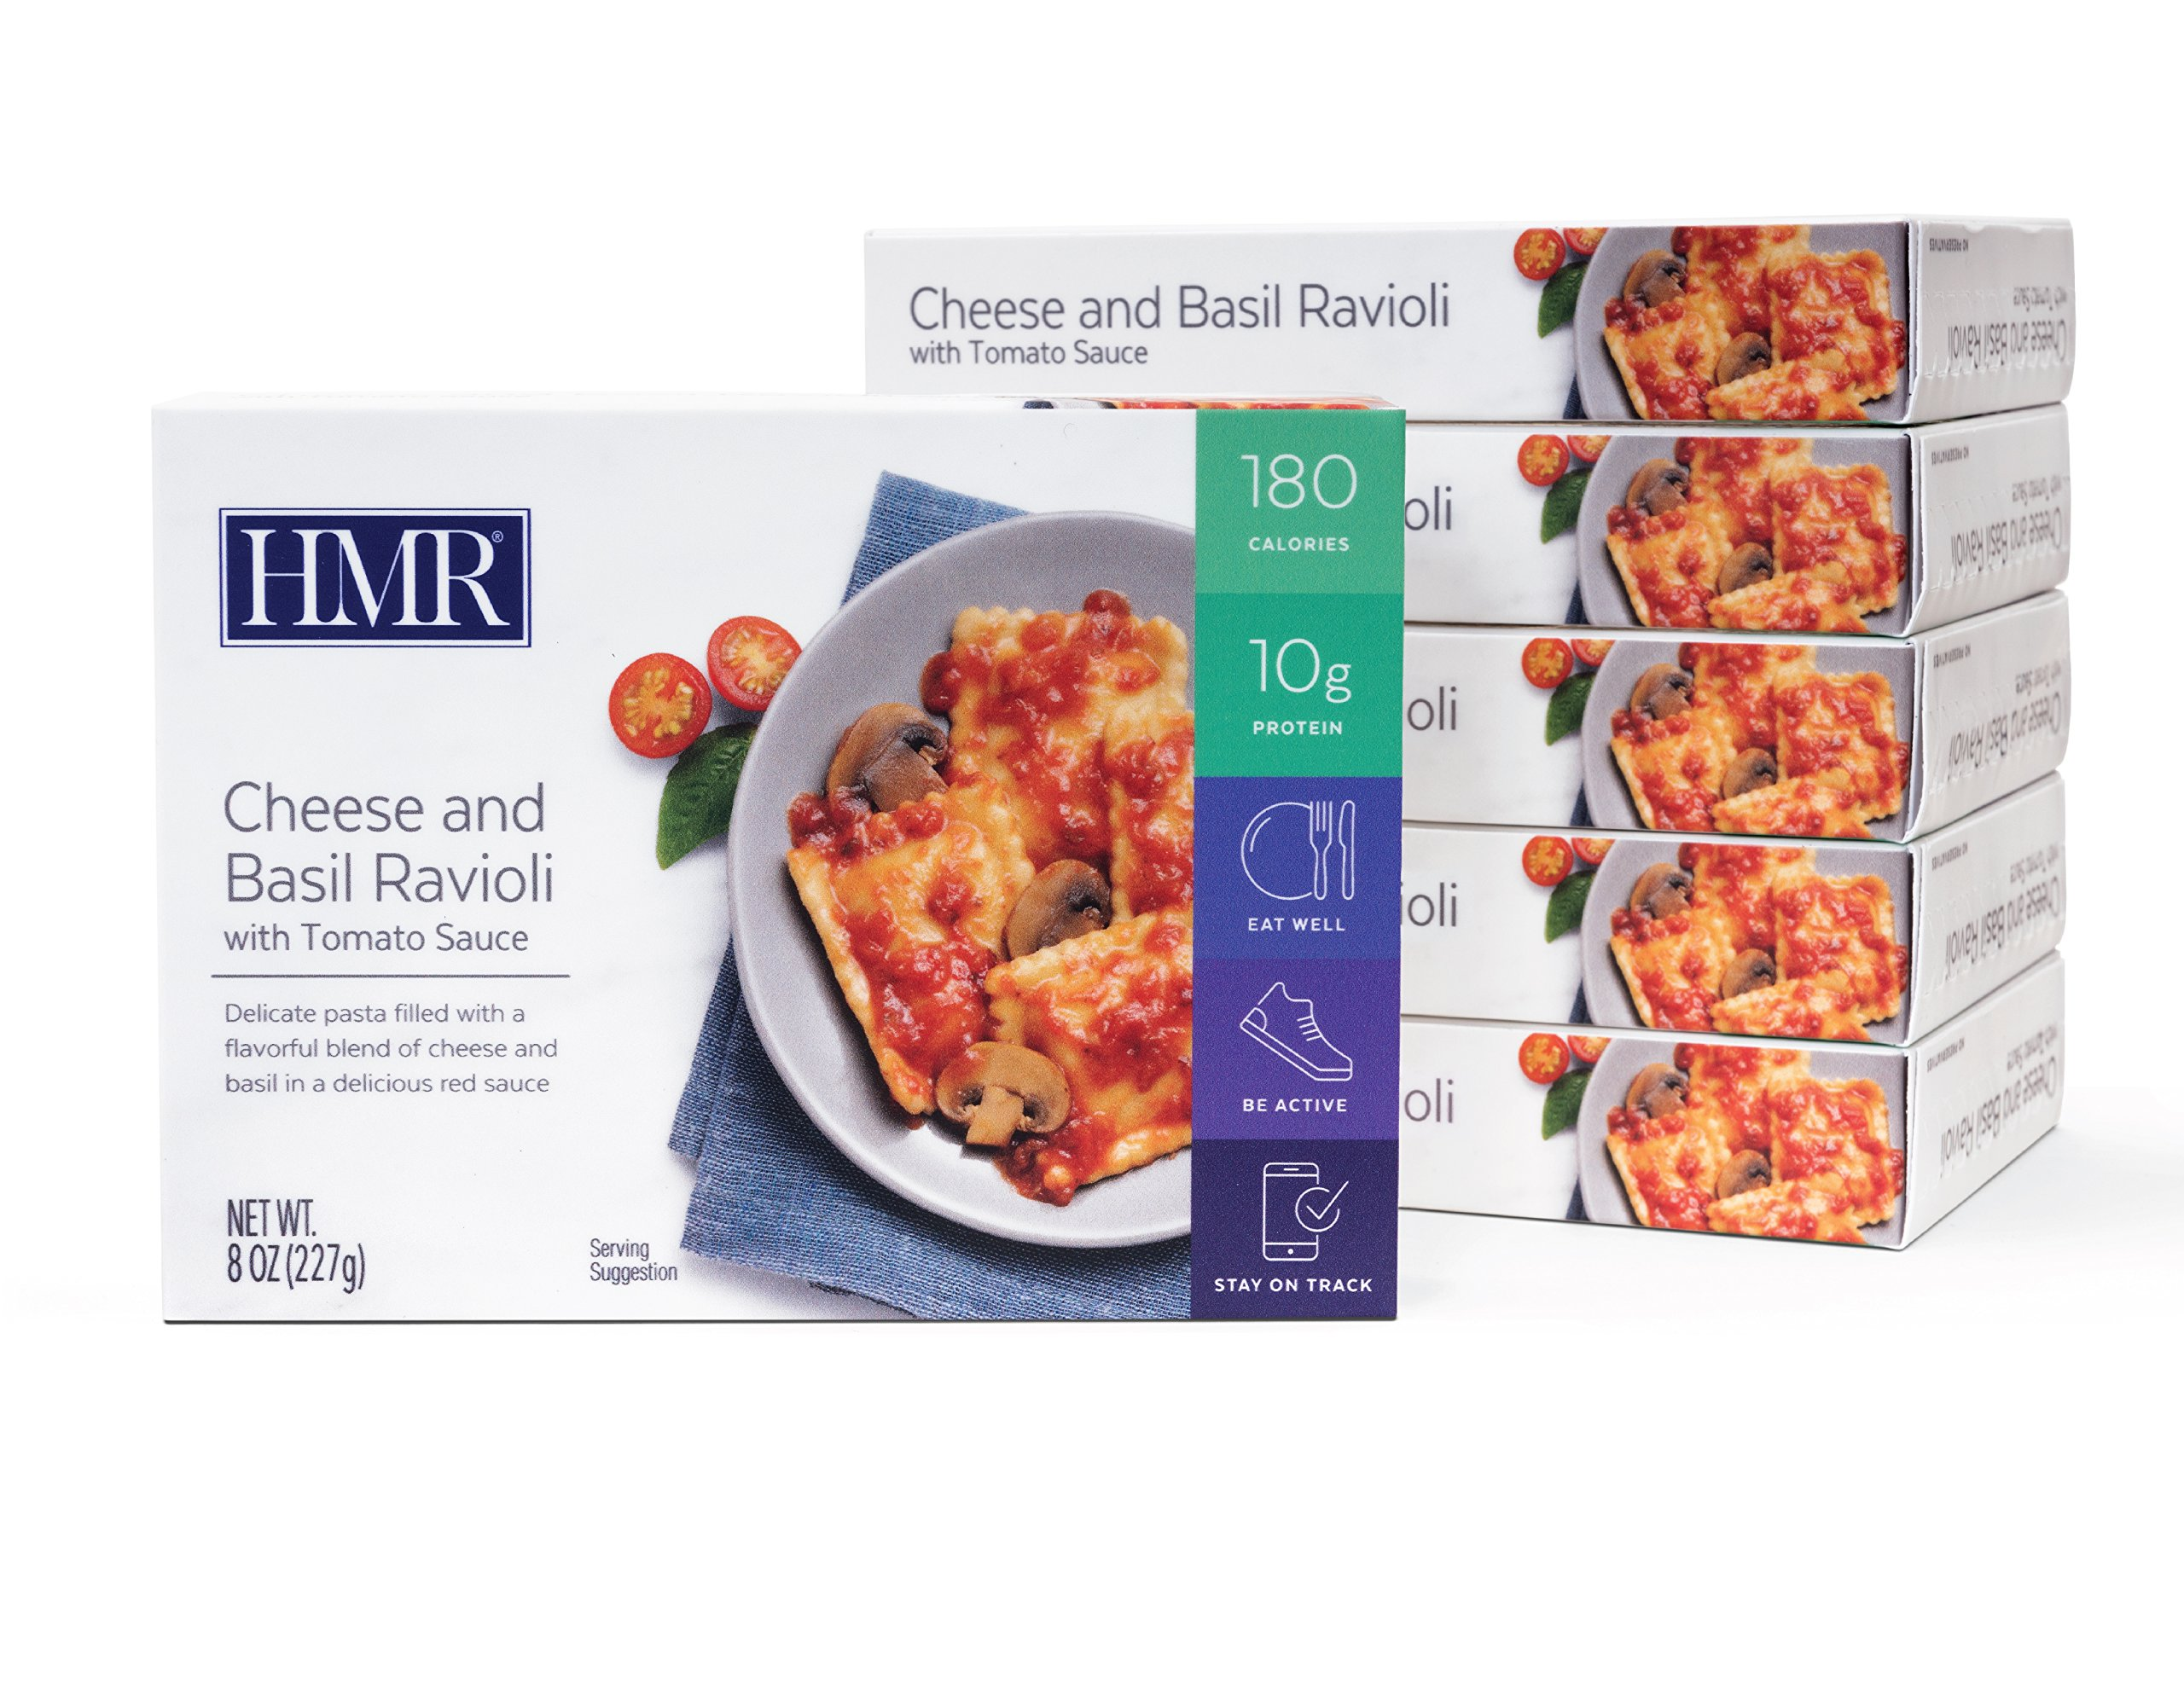 HMR Cheese and Basil Ravioli with Tomato Sauce Entree, 8 oz. Servings, 6 Count by HMR